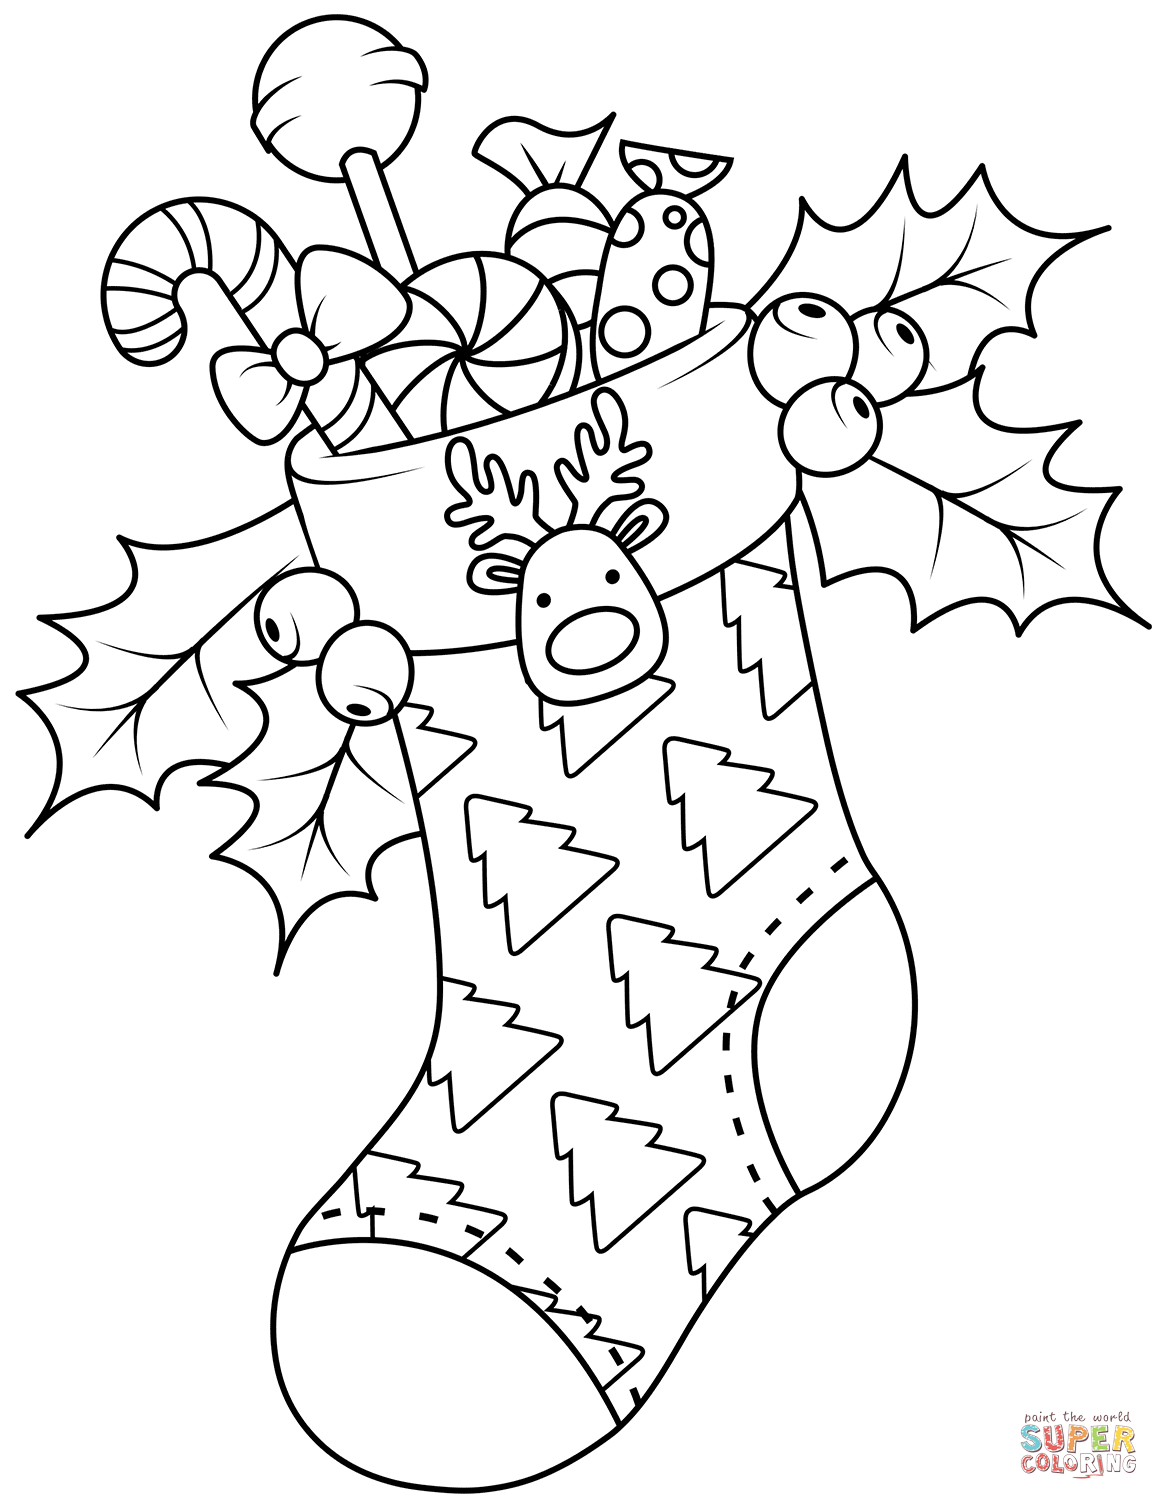 Christmas Stockings Coloring Pages Free Coloring Pages